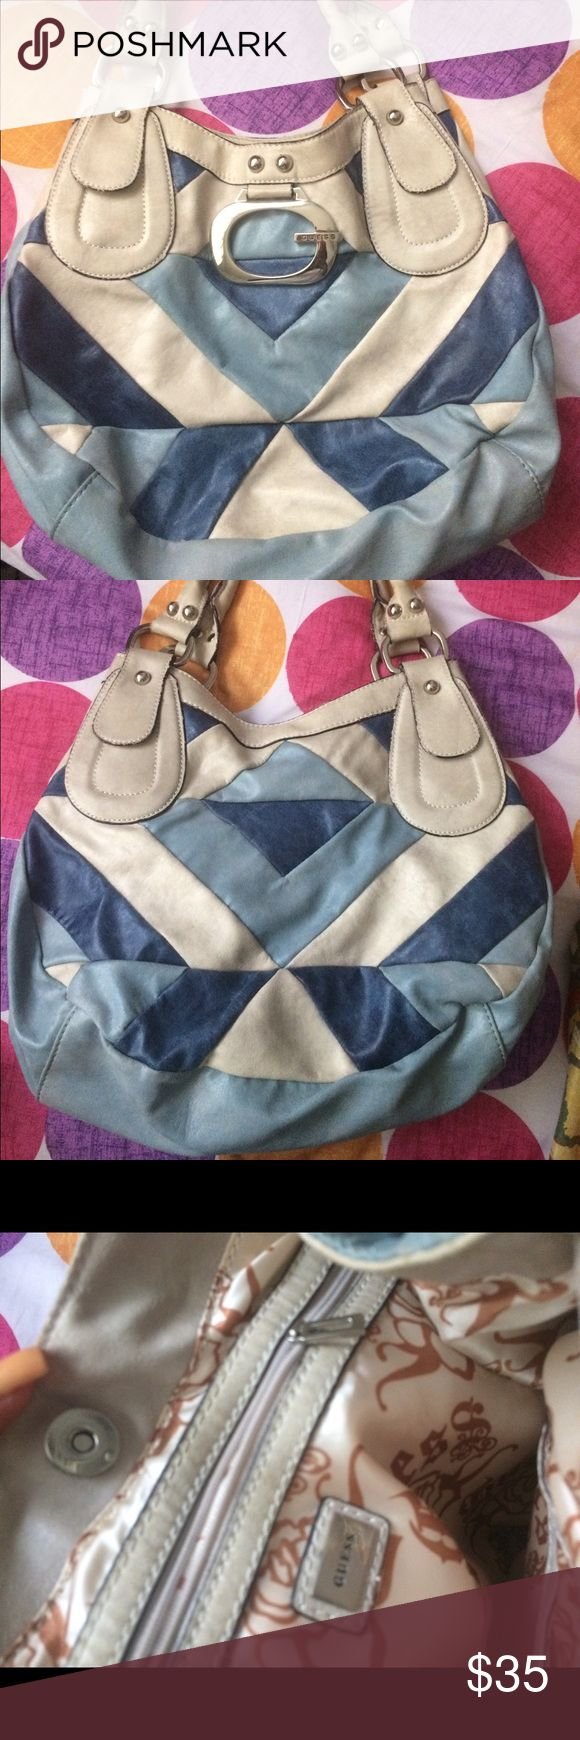 Guess bag Blue and white guess bag. Good condition Guess Bags